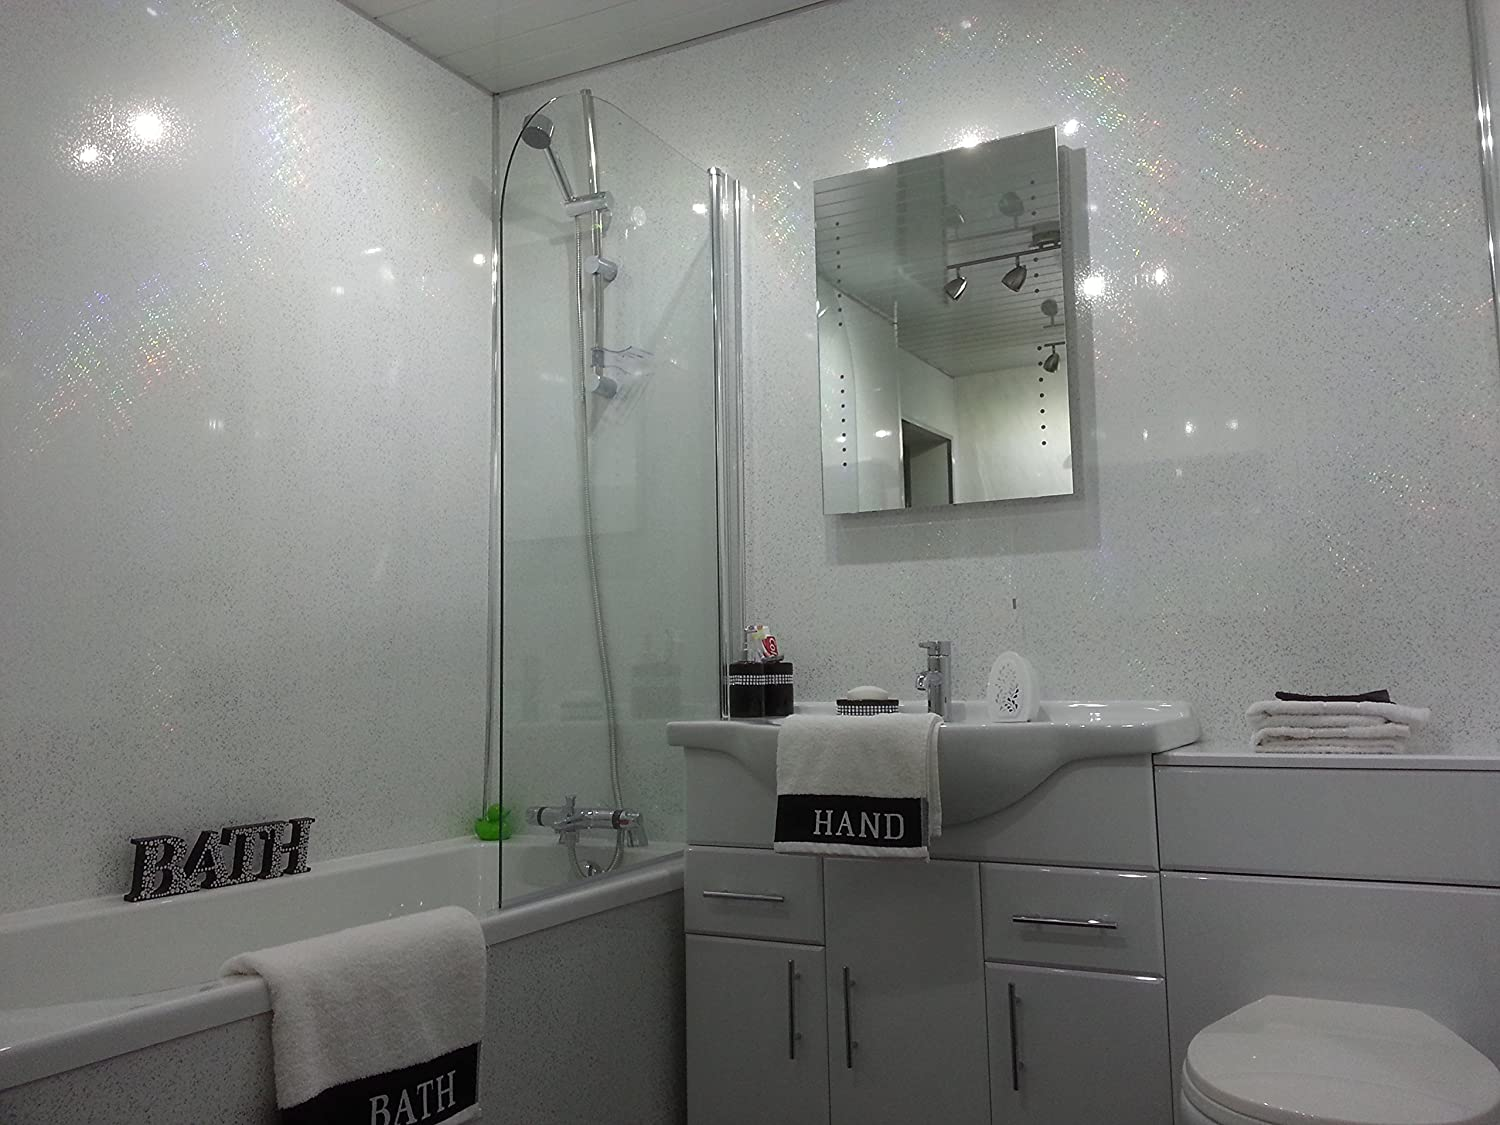 5 White Sparkle Diamond Effect PVC Bathroom Cladding Shower Wall